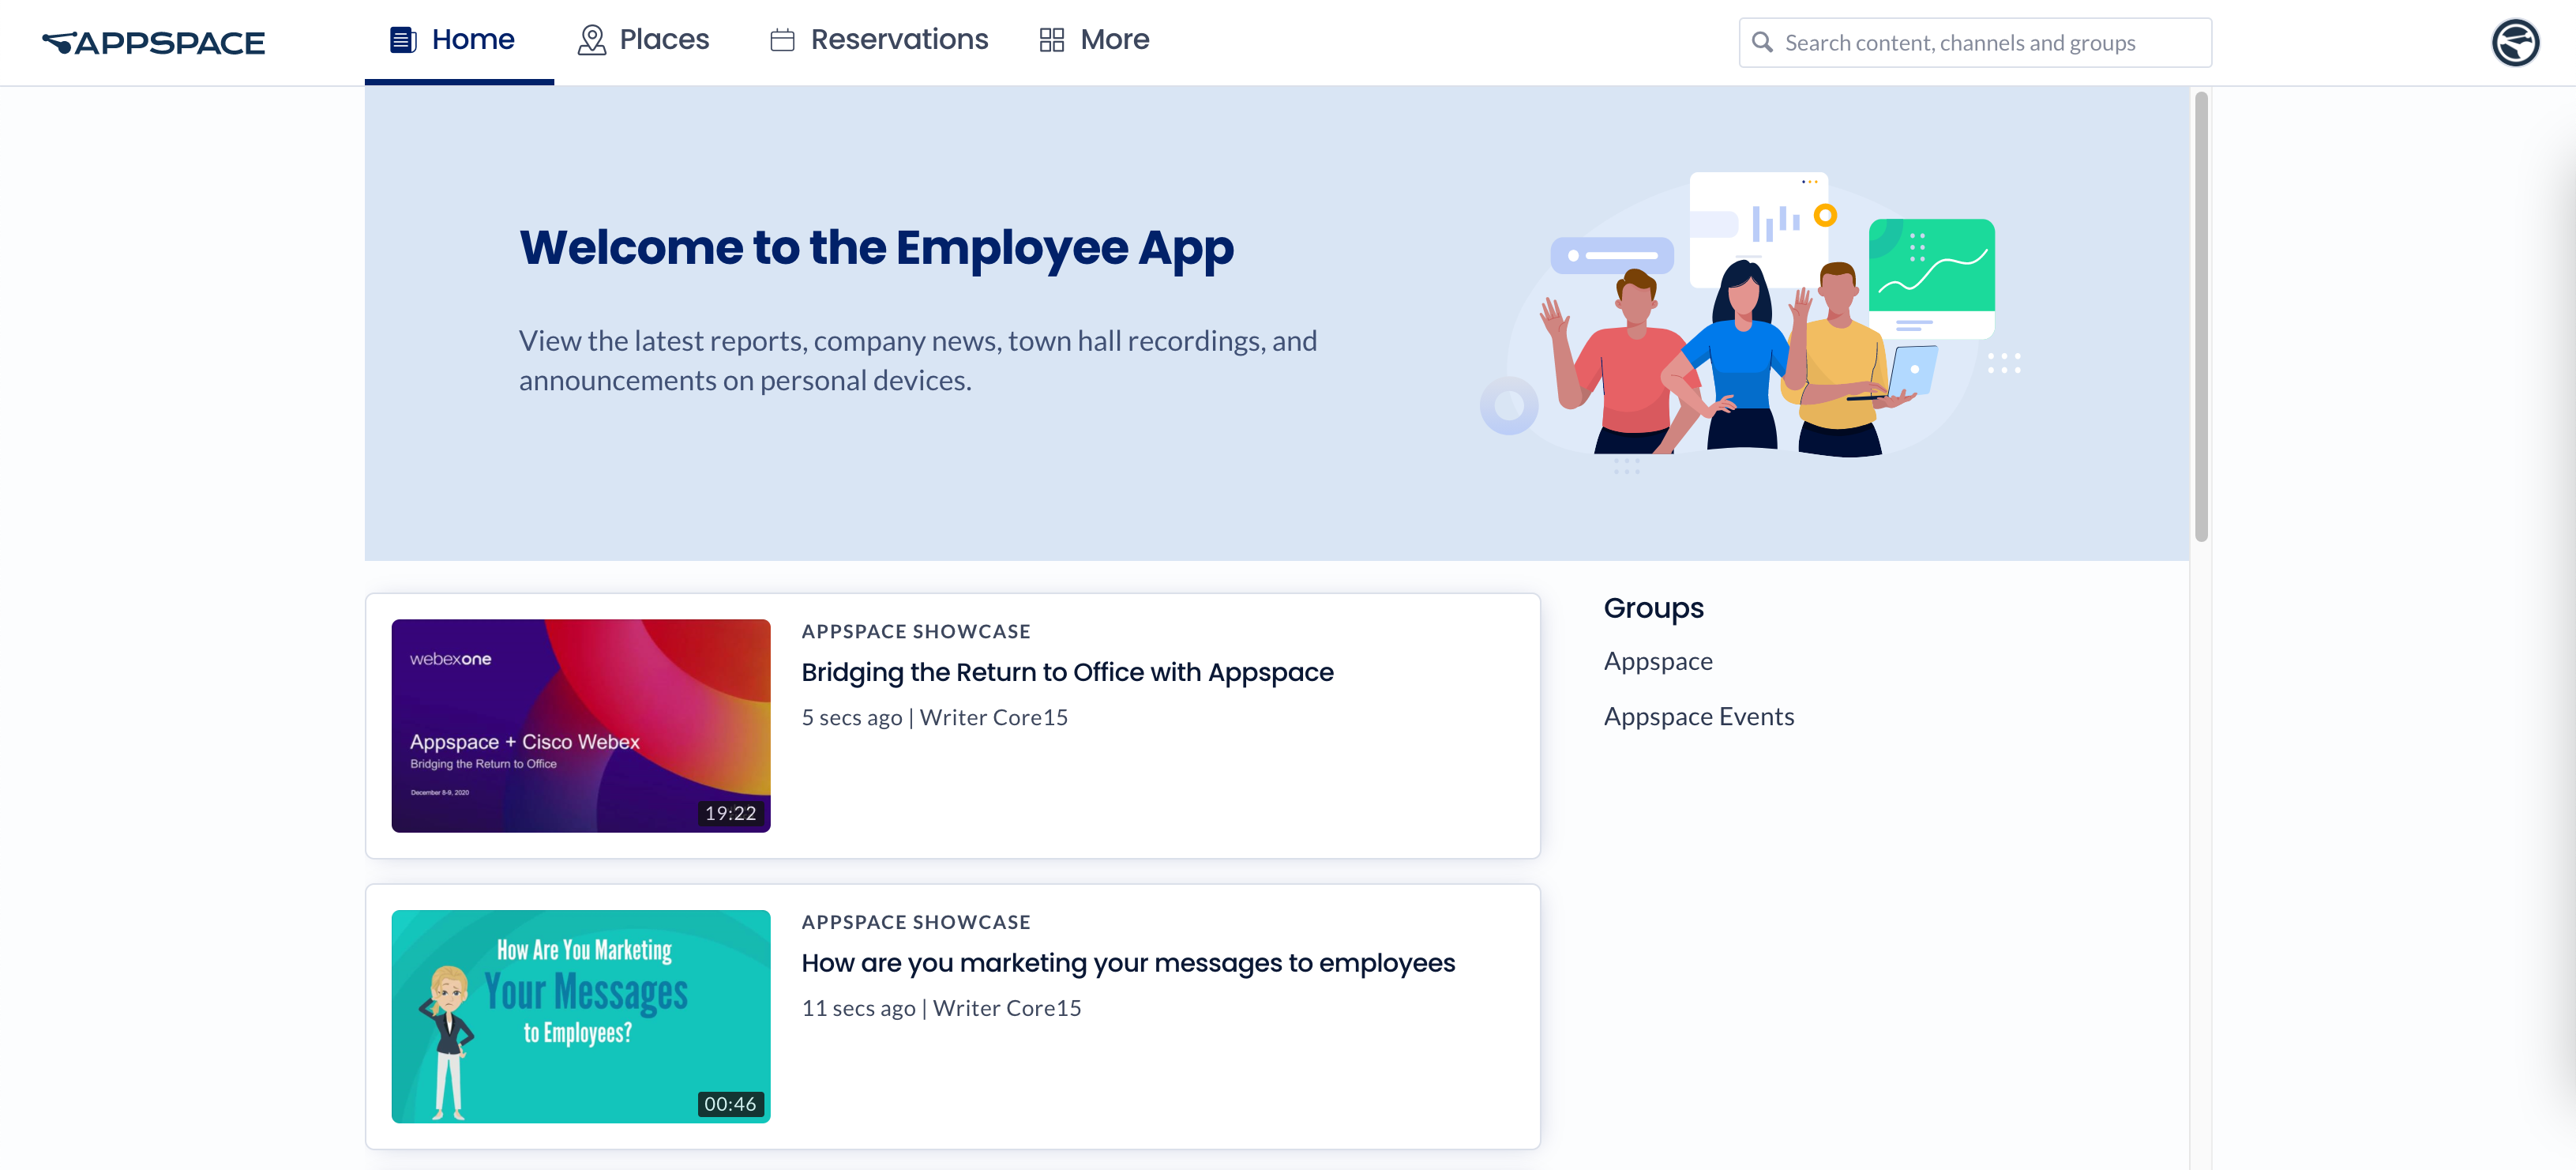 Browse and Navigate Appspace Employee App Portal - Appspace Employee App